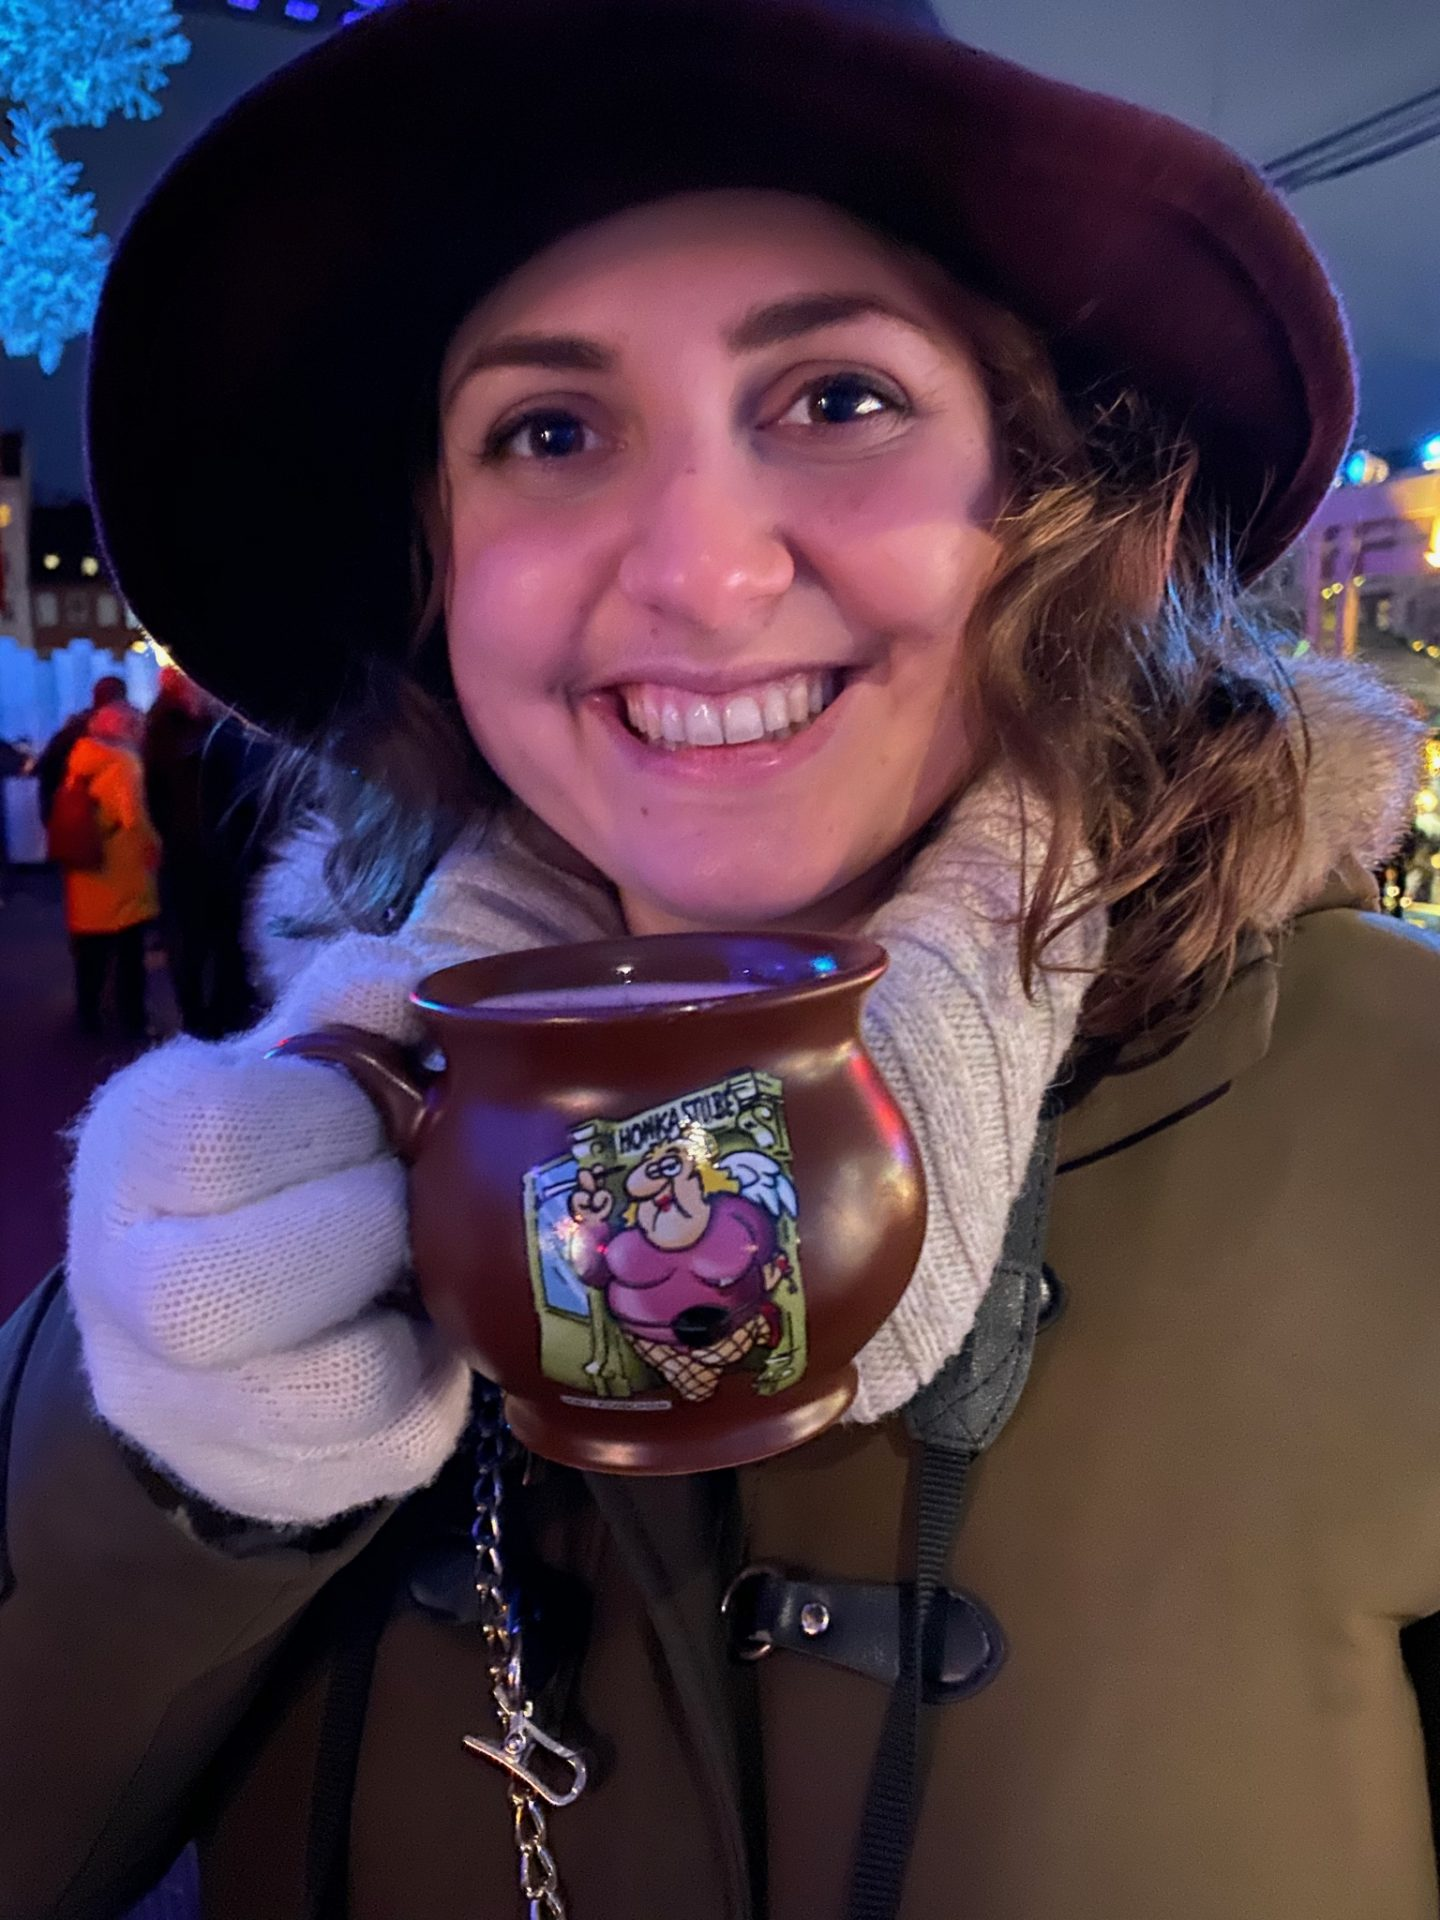 Hamburg Christmas markets santa pauli: Nell holding a mug of mulled wine and smiling at the camera at the Santa Pauli Christmas market in Hamburg